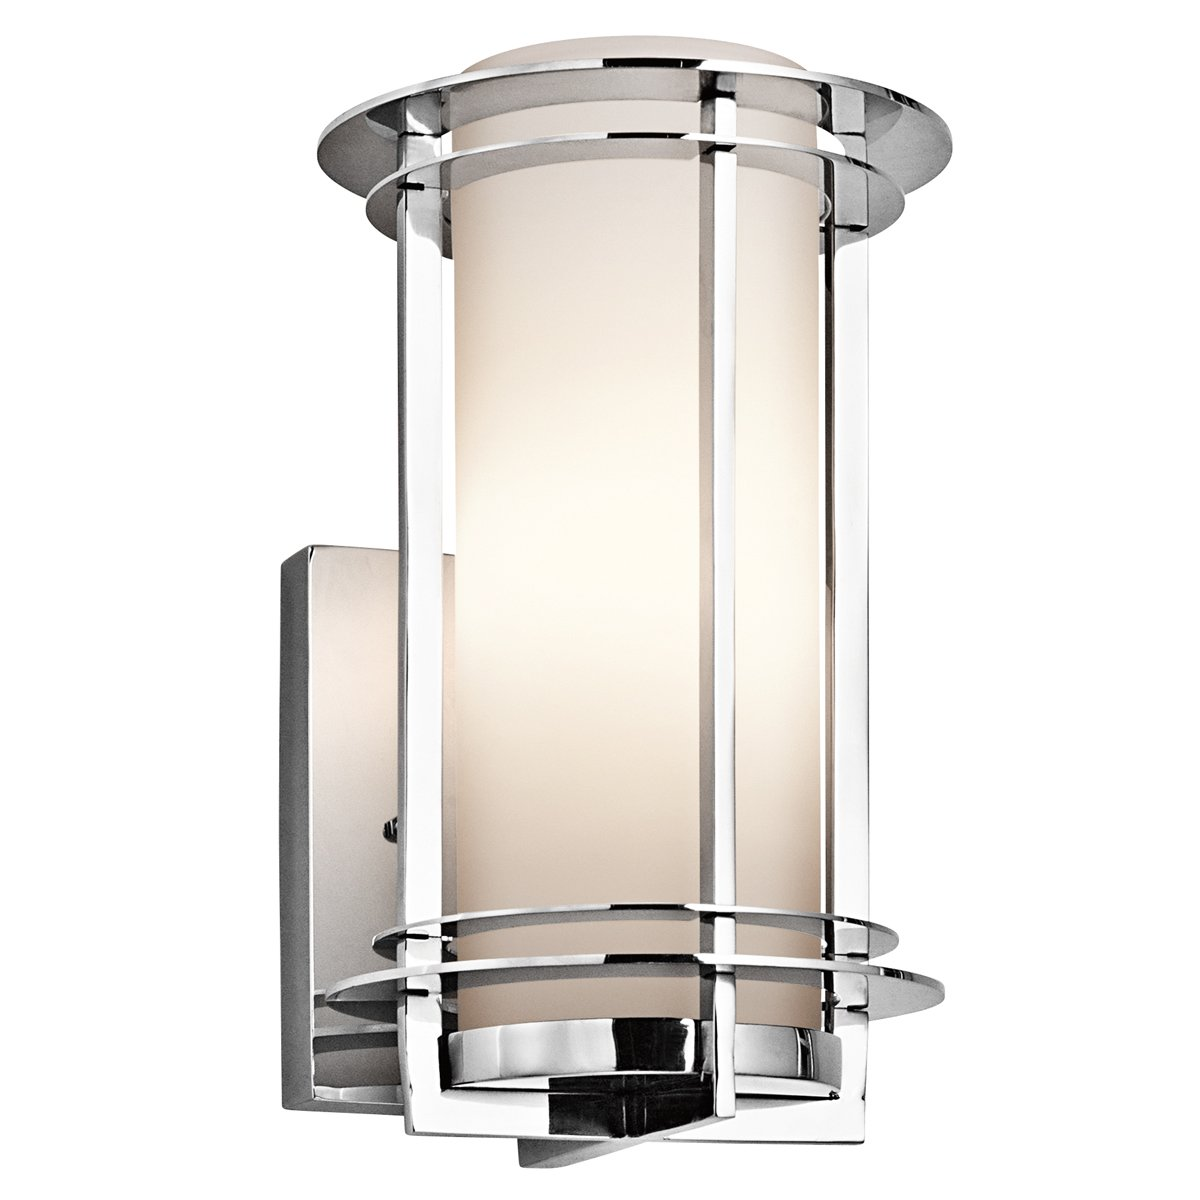 Kichler 49344pss316 one light outdoor wall mount wall porch lights kichler 49344pss316 one light outdoor wall mount wall porch lights amazon arubaitofo Choice Image